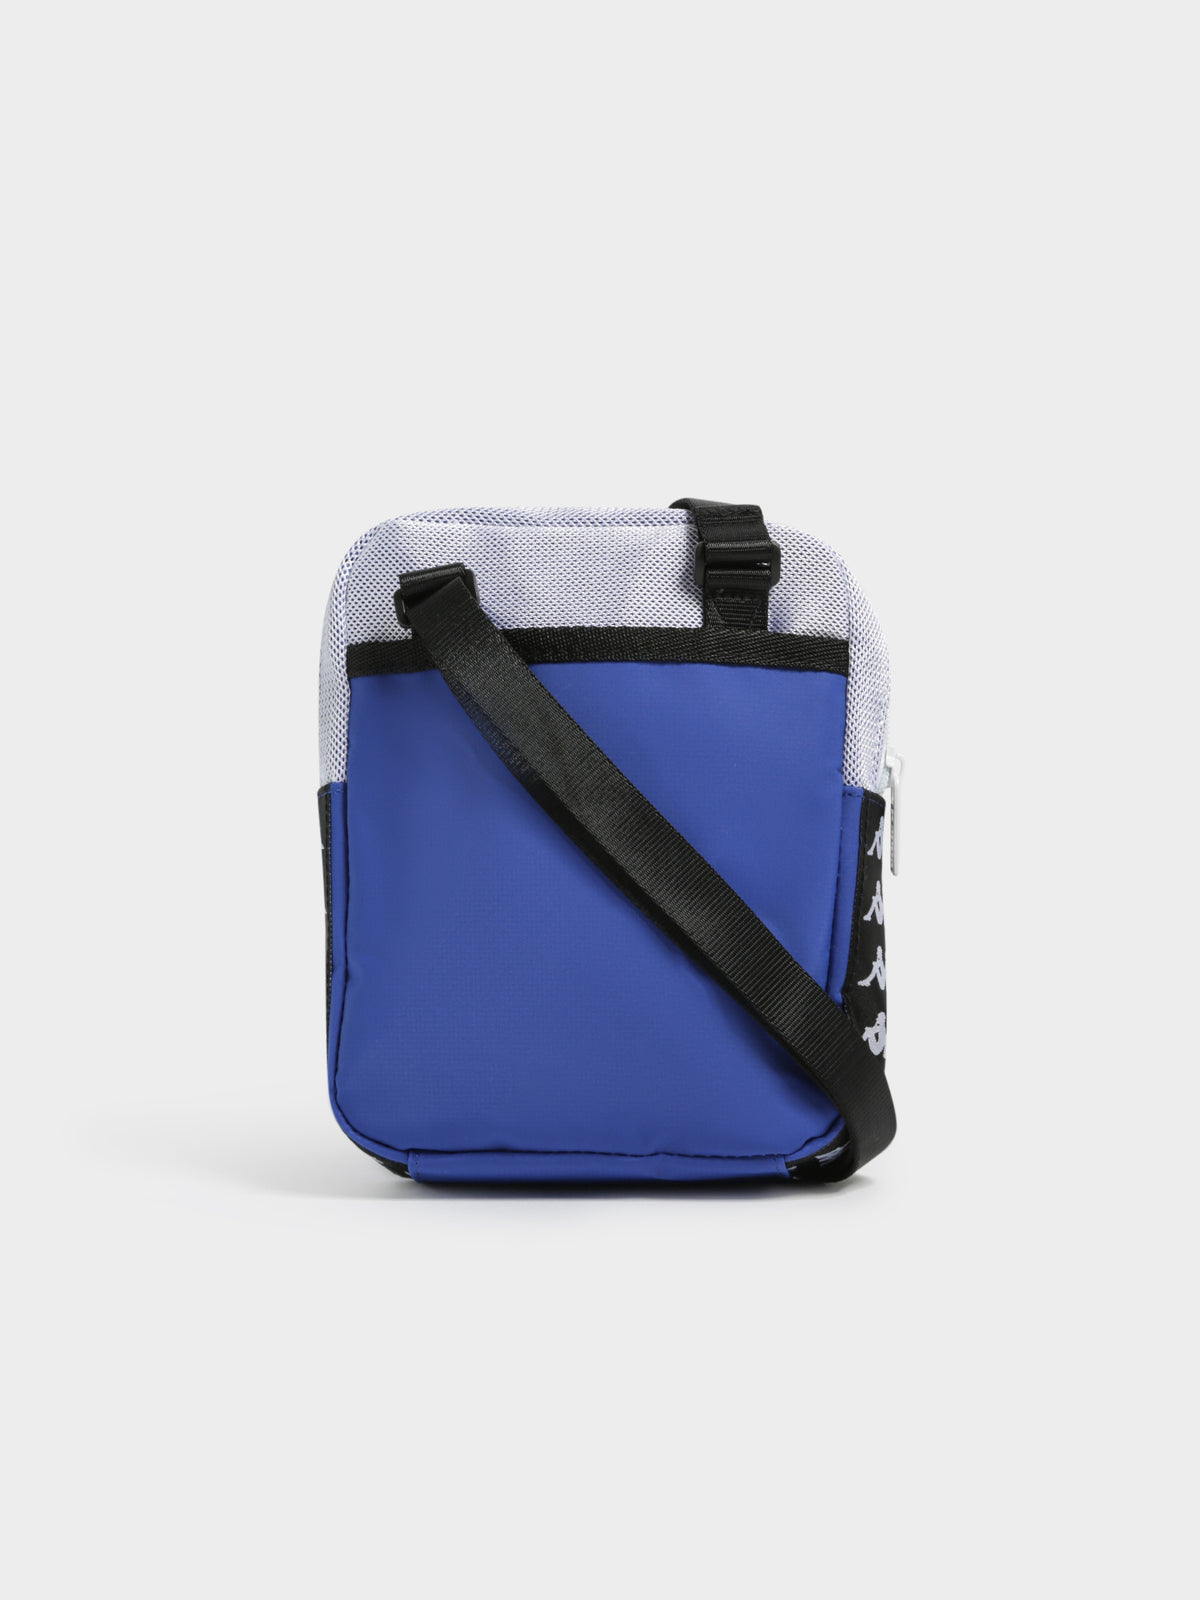 222 Banda Bayes Crossbody Bag in Blue Royal & Black